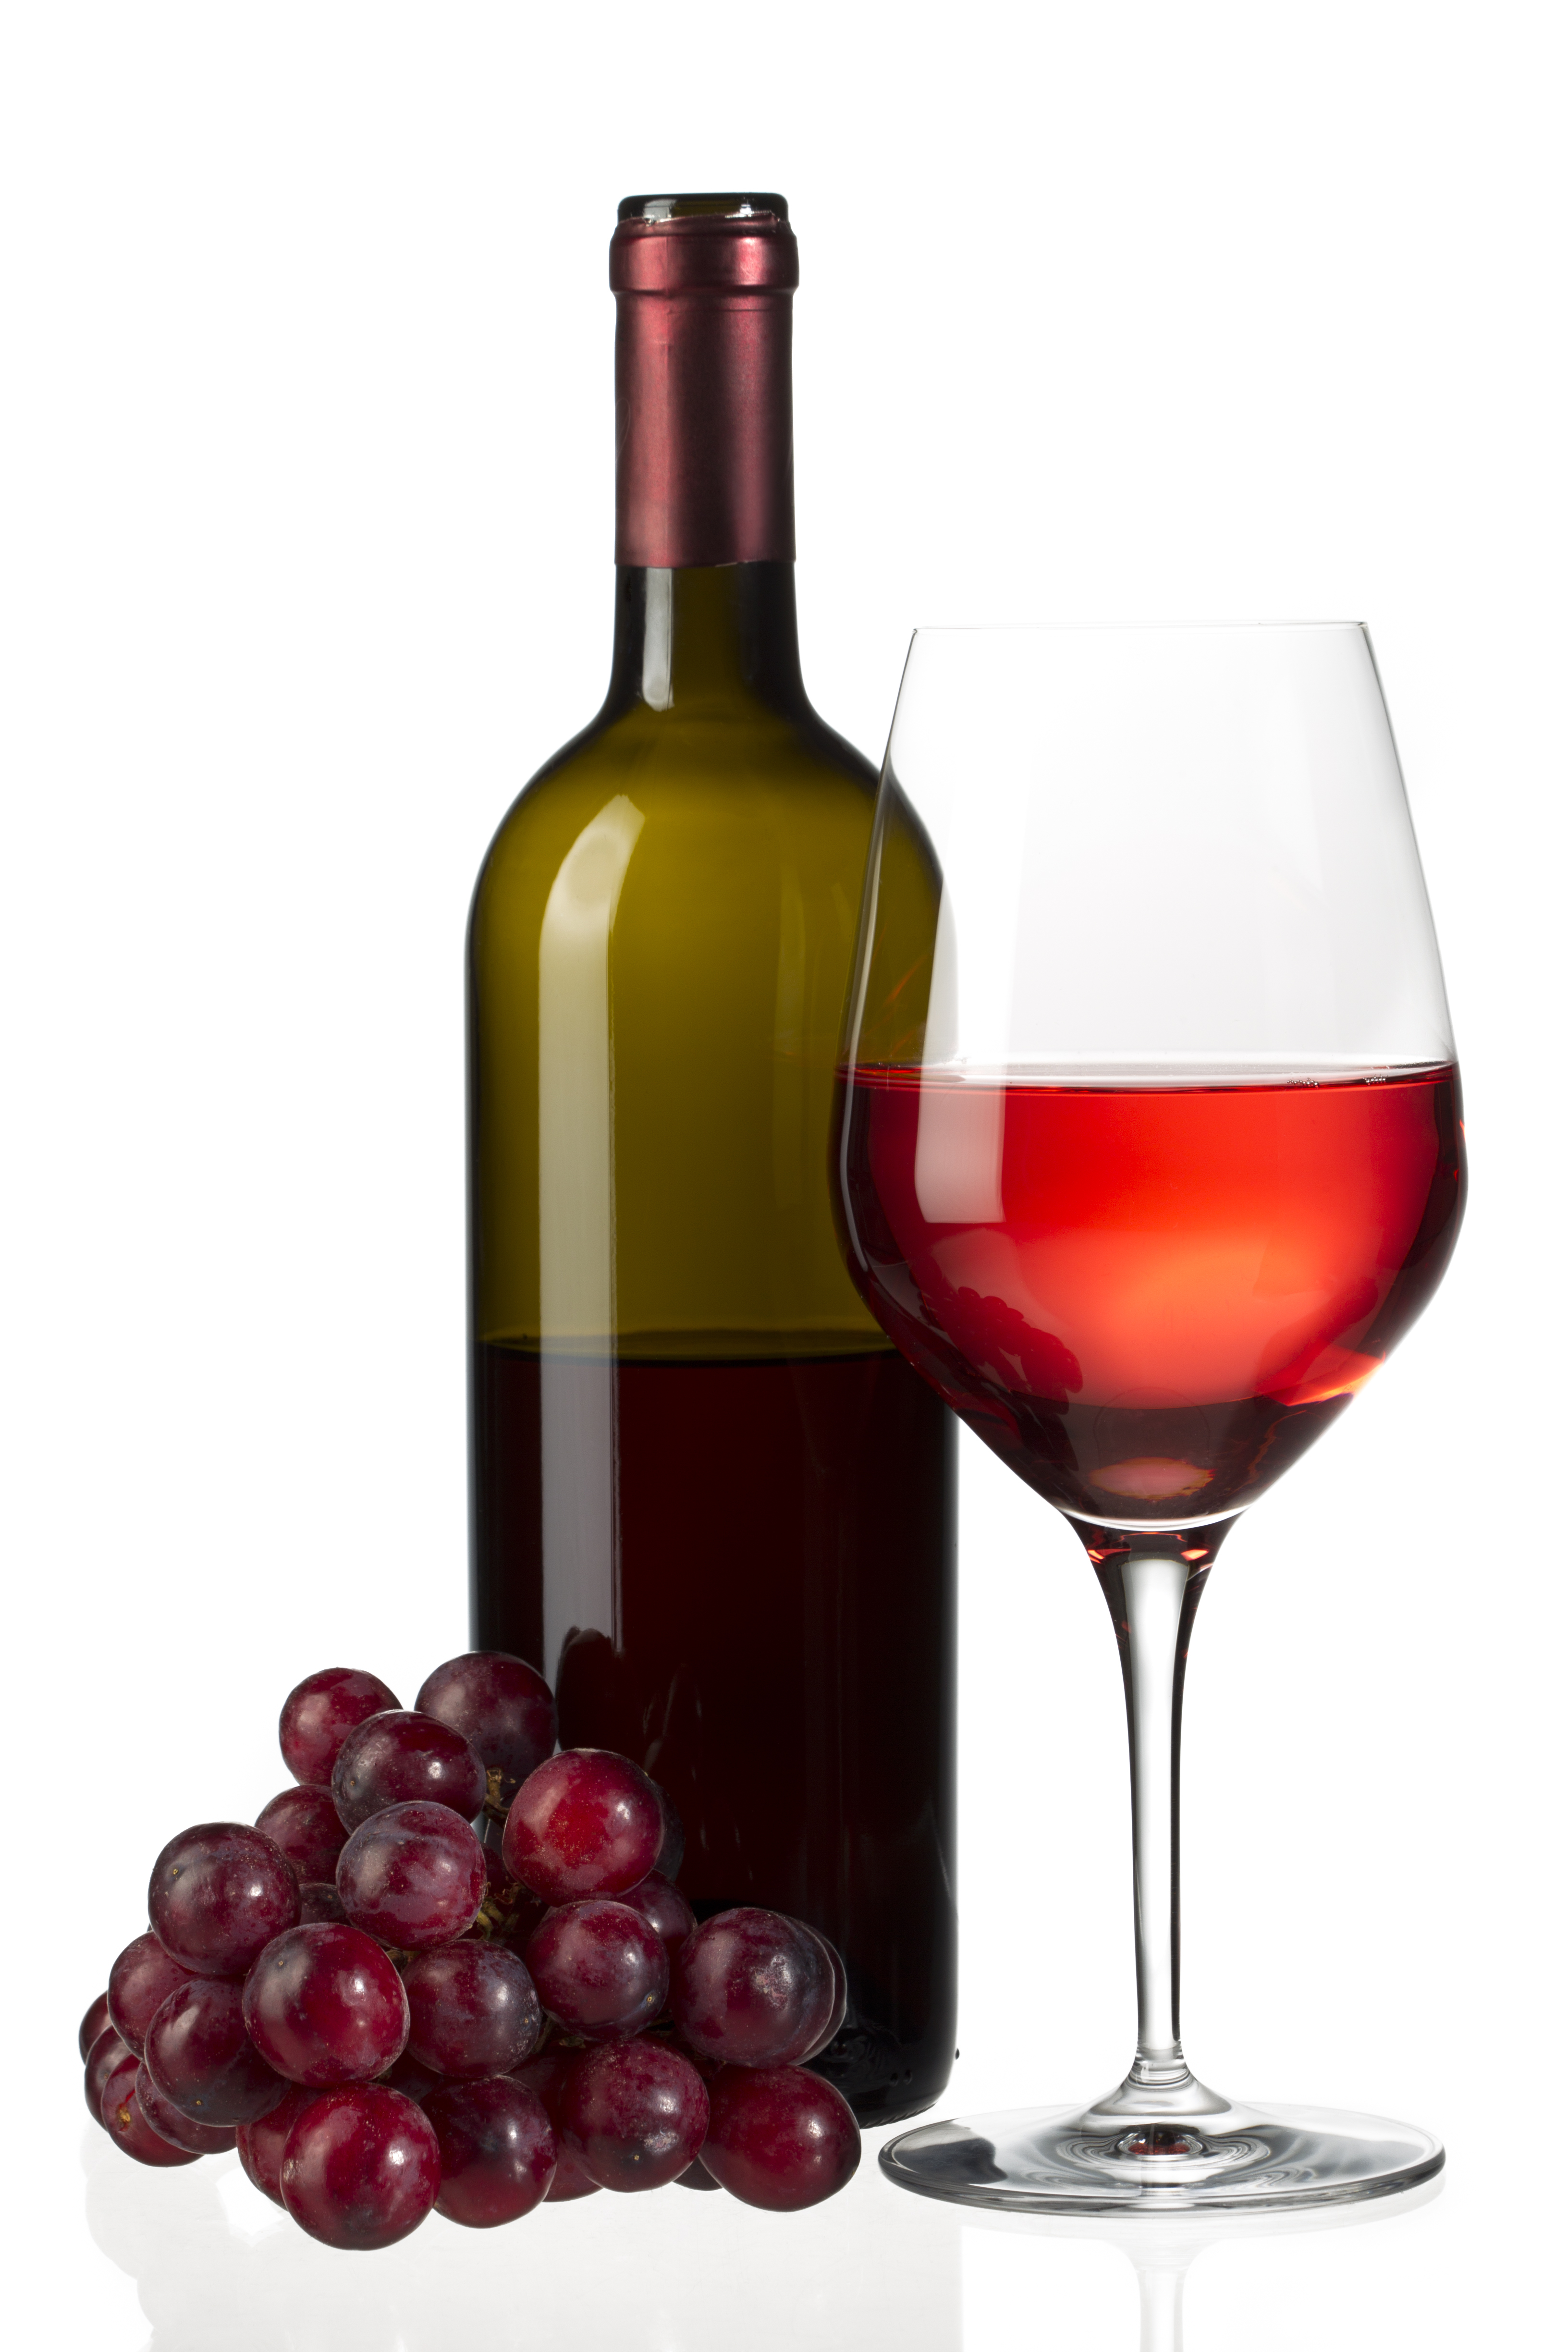 Wine High Quality Background on Wallpapers Vista